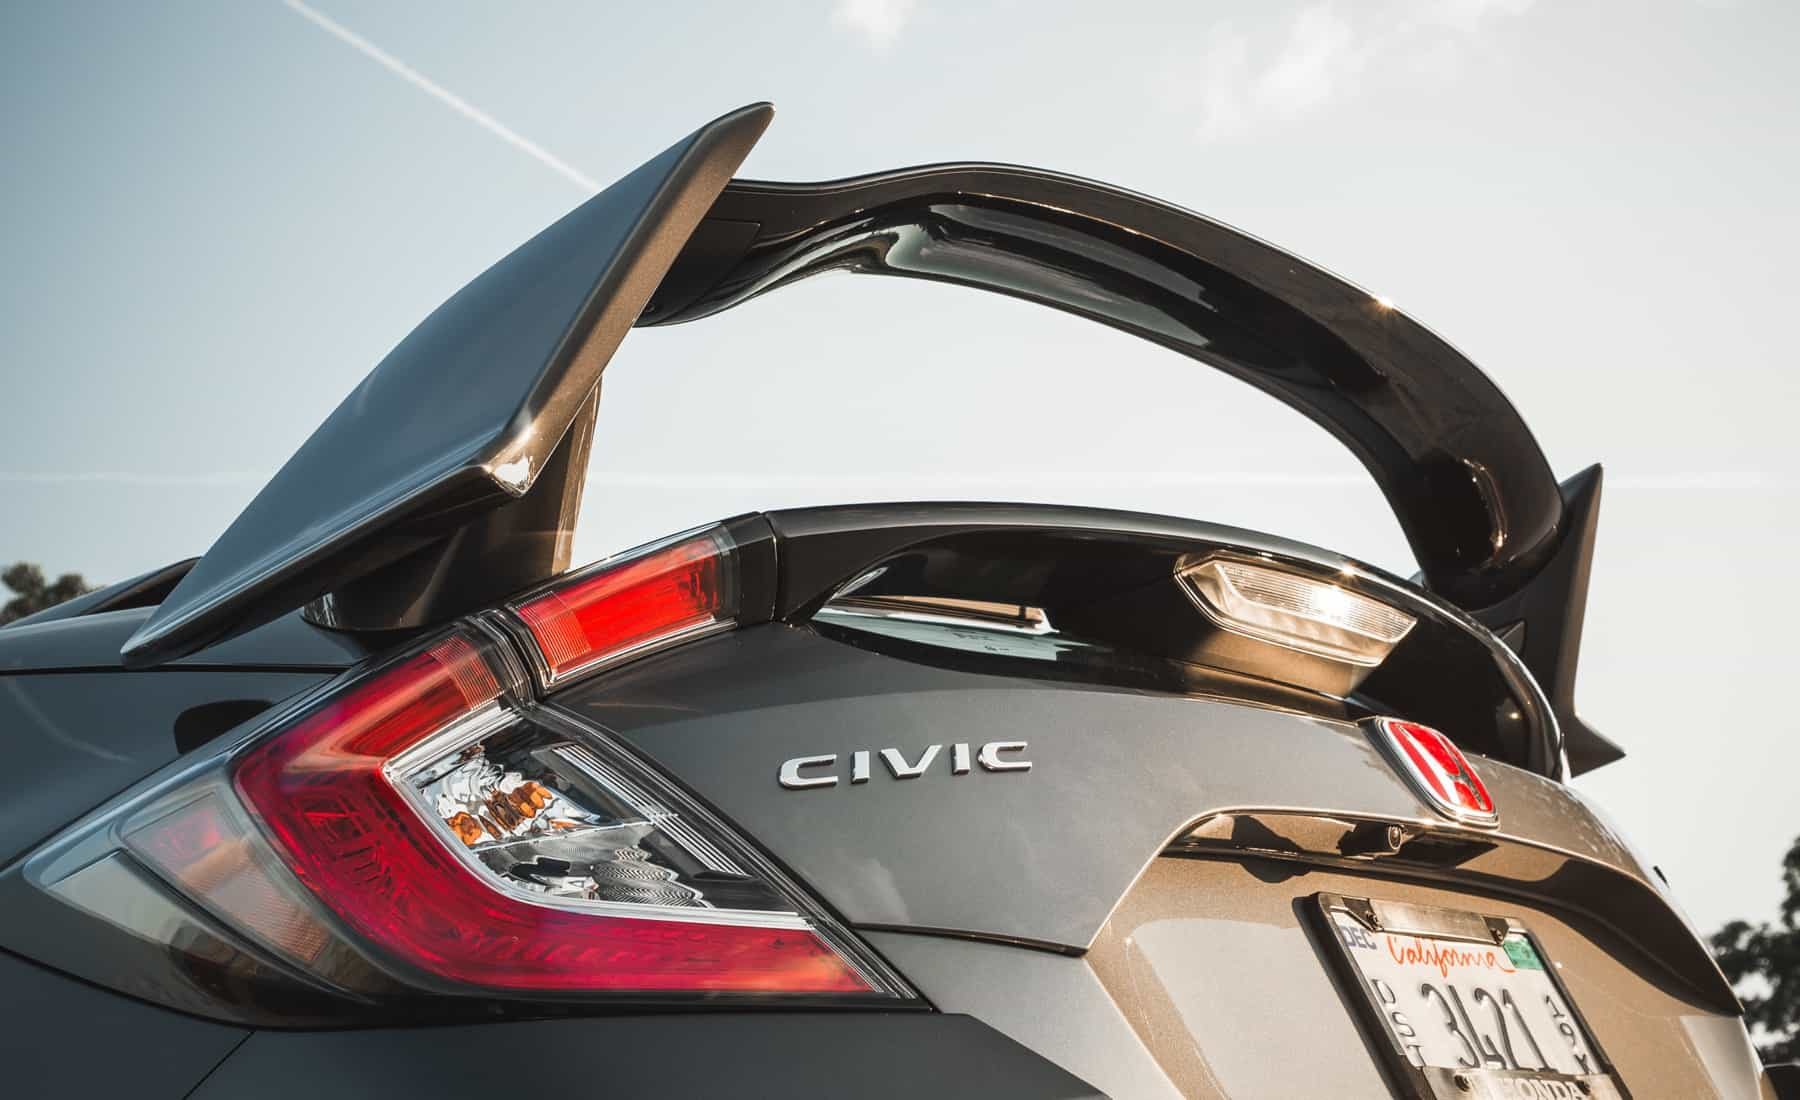 2017 Honda Civic Type R Exterior View Taillight And Emblem (Photo 33 of 48)